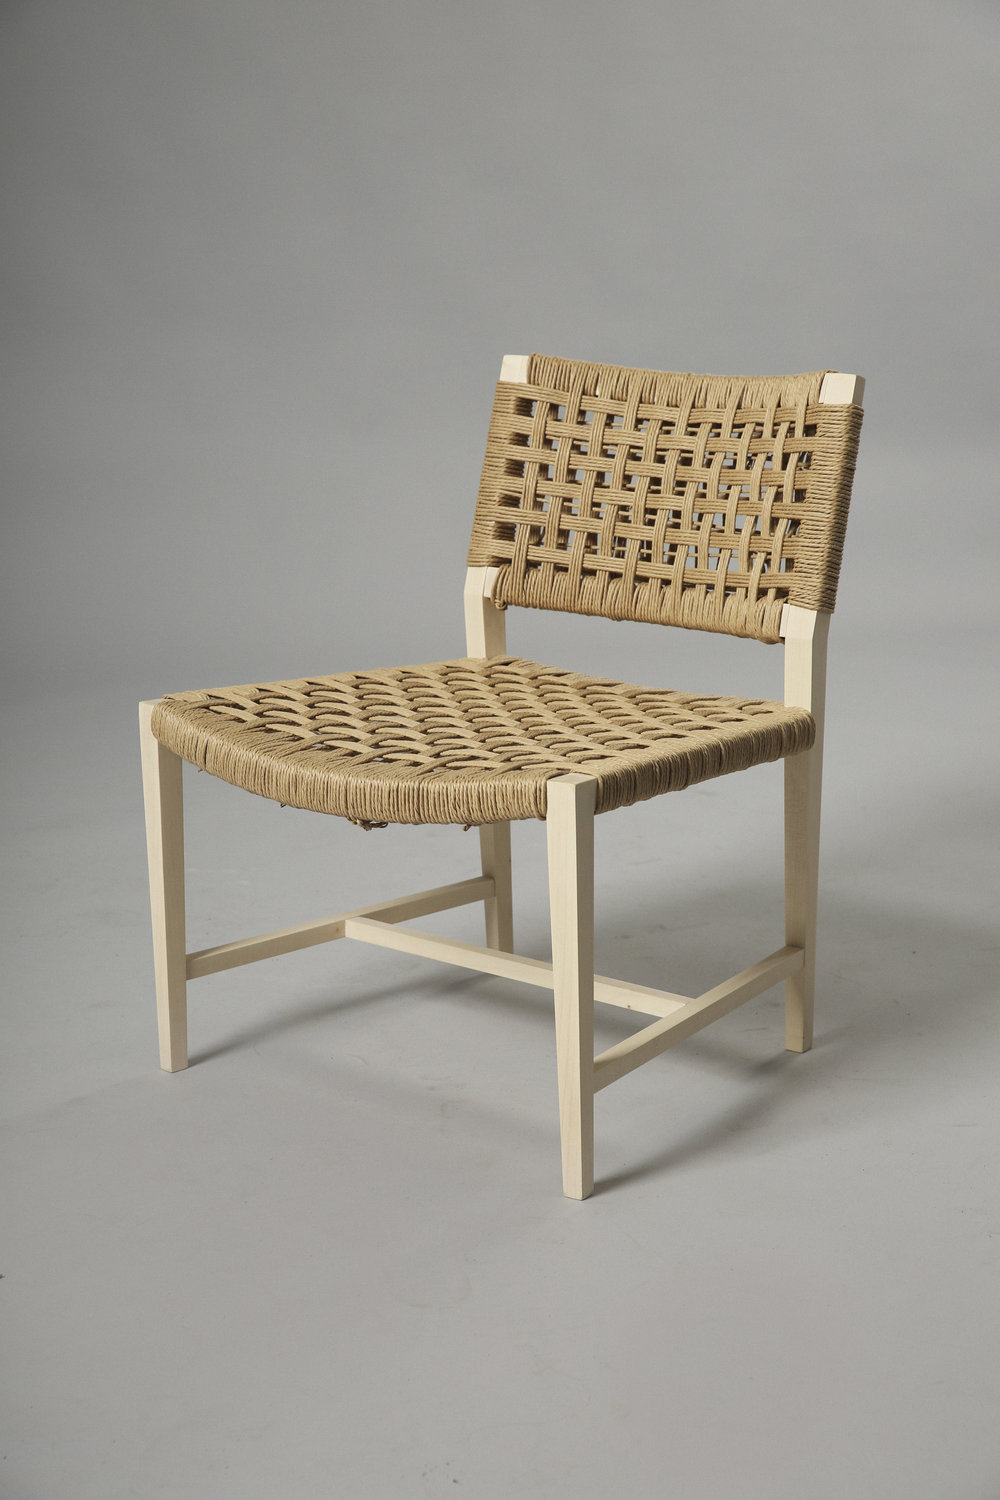 KH Chair 1 This Chair Was Designed And Built During A Study Abroad Furniture  Design Class